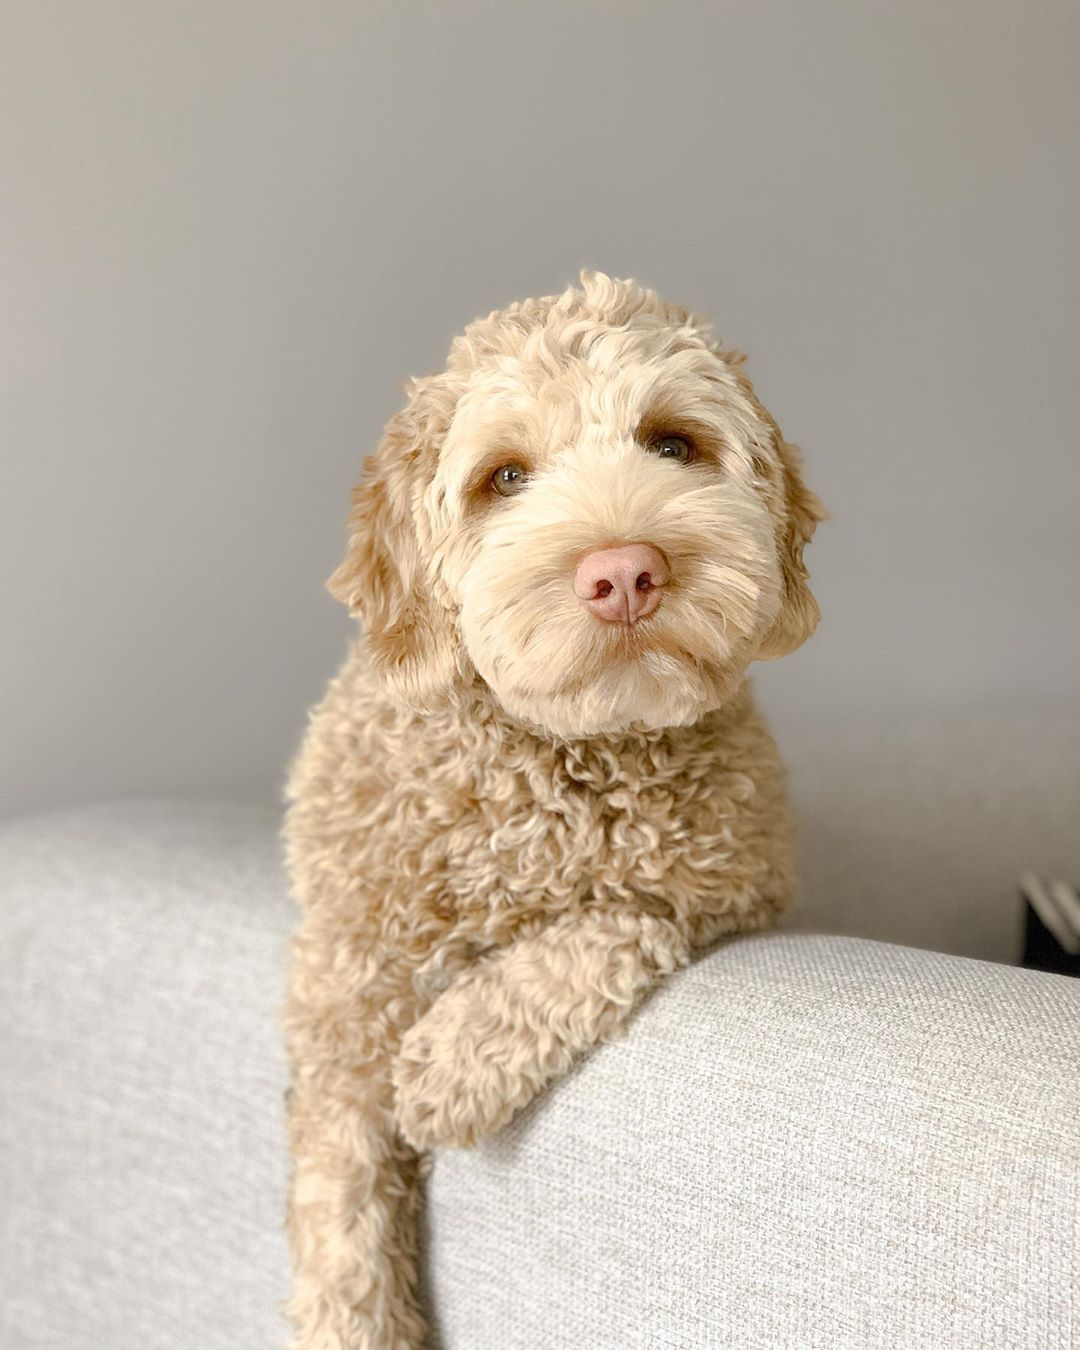 f1b labradoodle picture